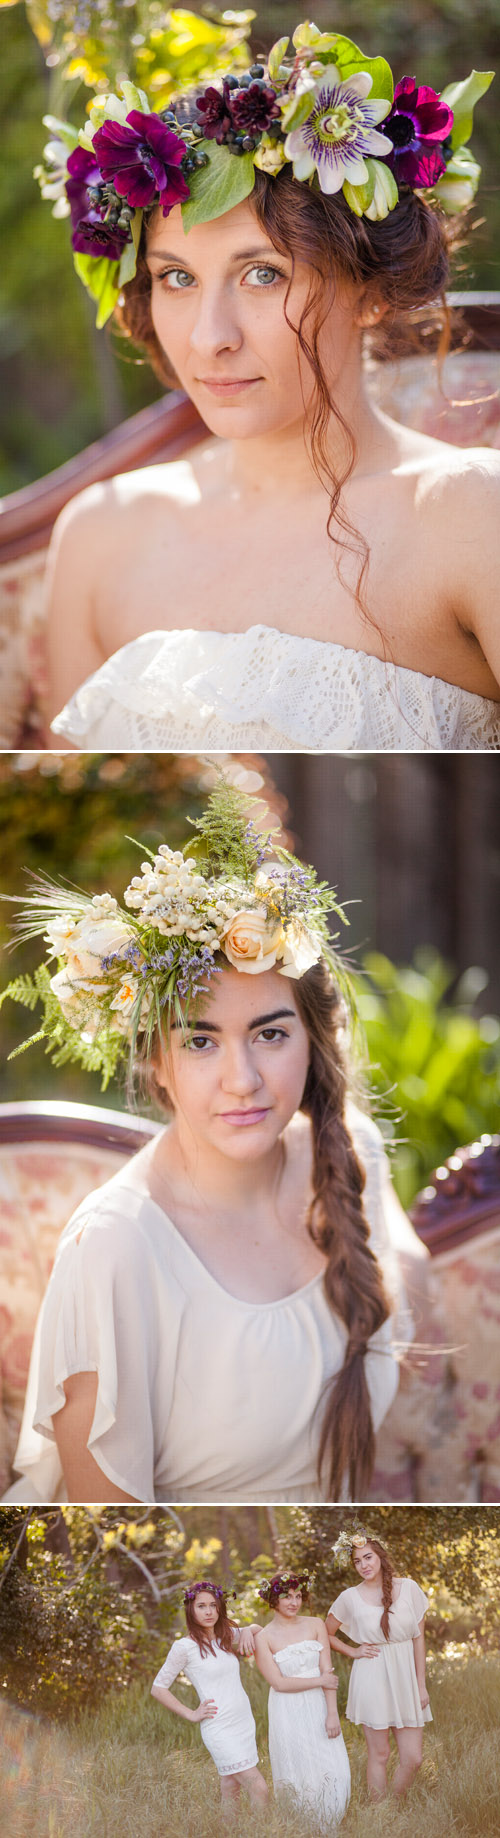 Floral head wreaths by Twigss Floral Studio - Photos by Danielle Capito Photography via Junebug Weddings